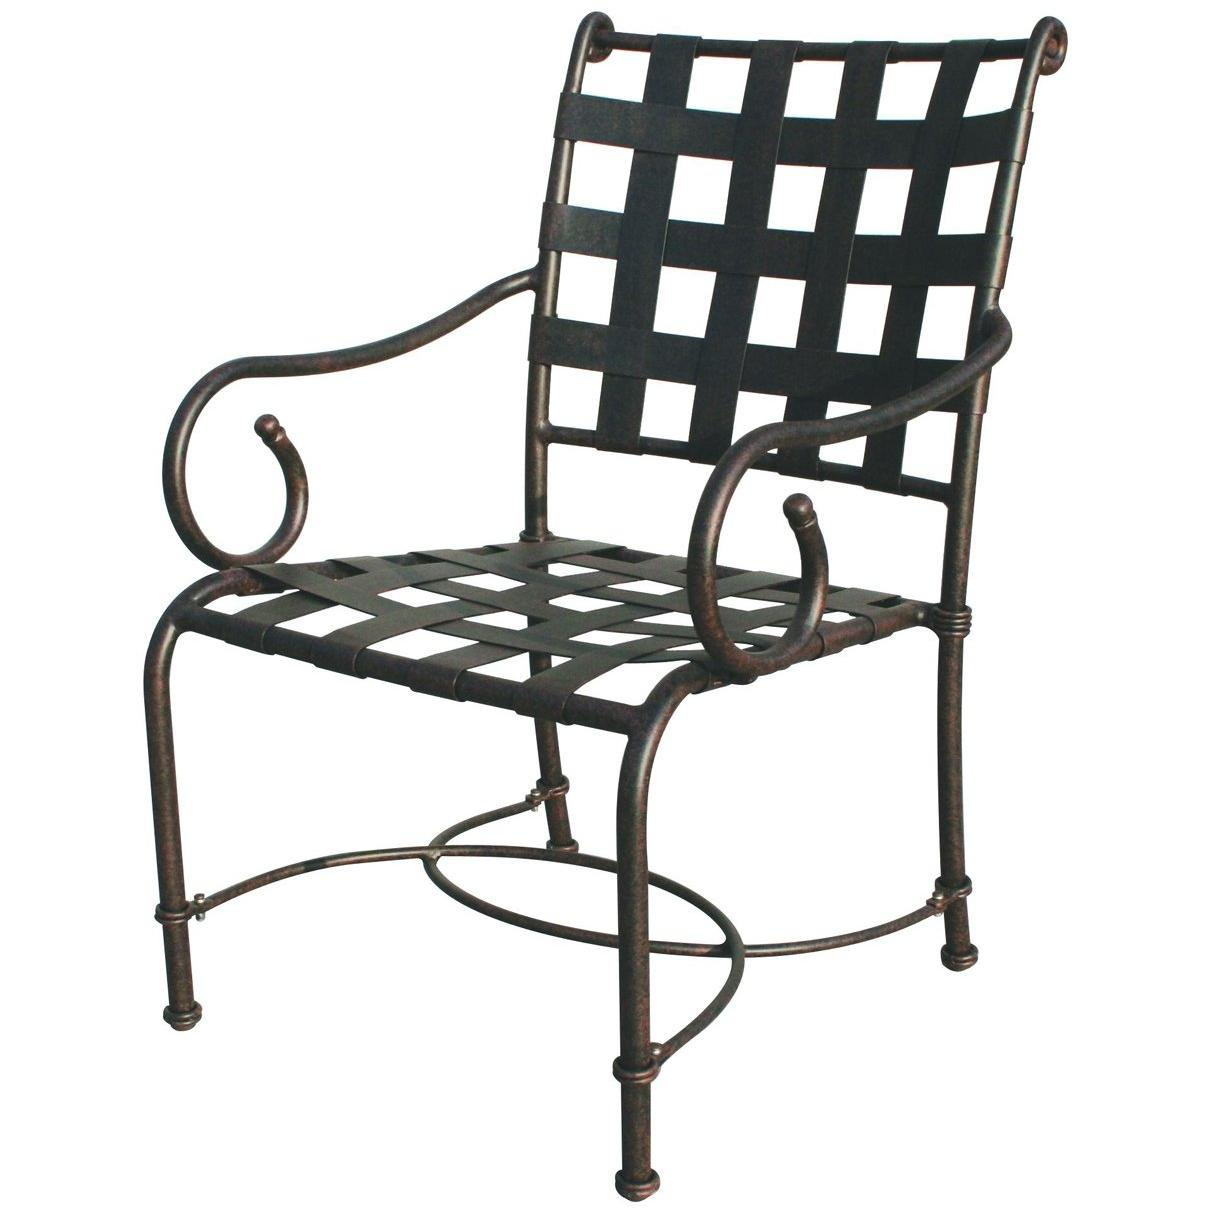 Darlee Malibu Aluminum Outdoor Patio Dining Chair With Cushions - Antique Bronze